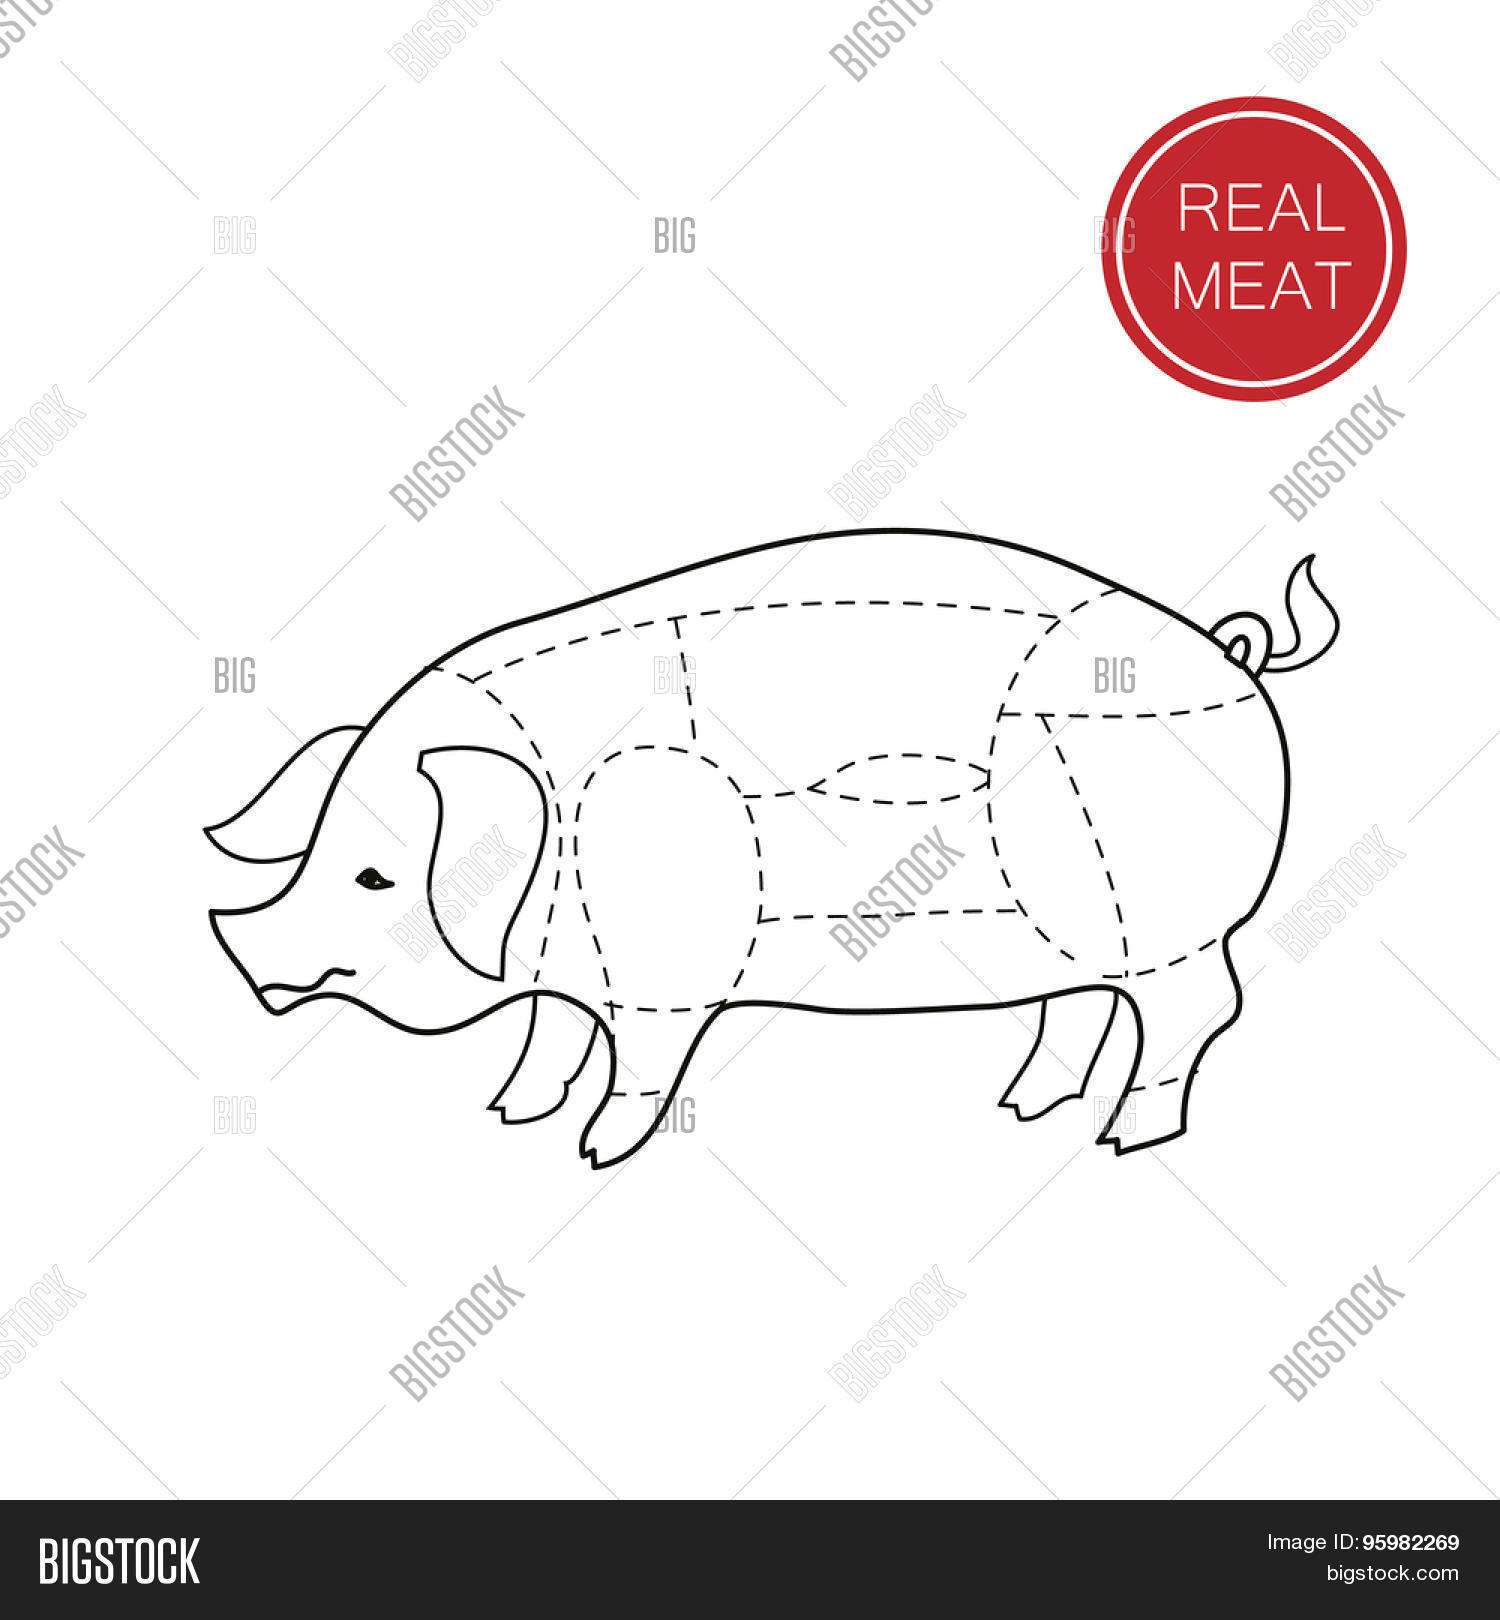 Real Meat Butcher Vector Amp Photo Free Trial